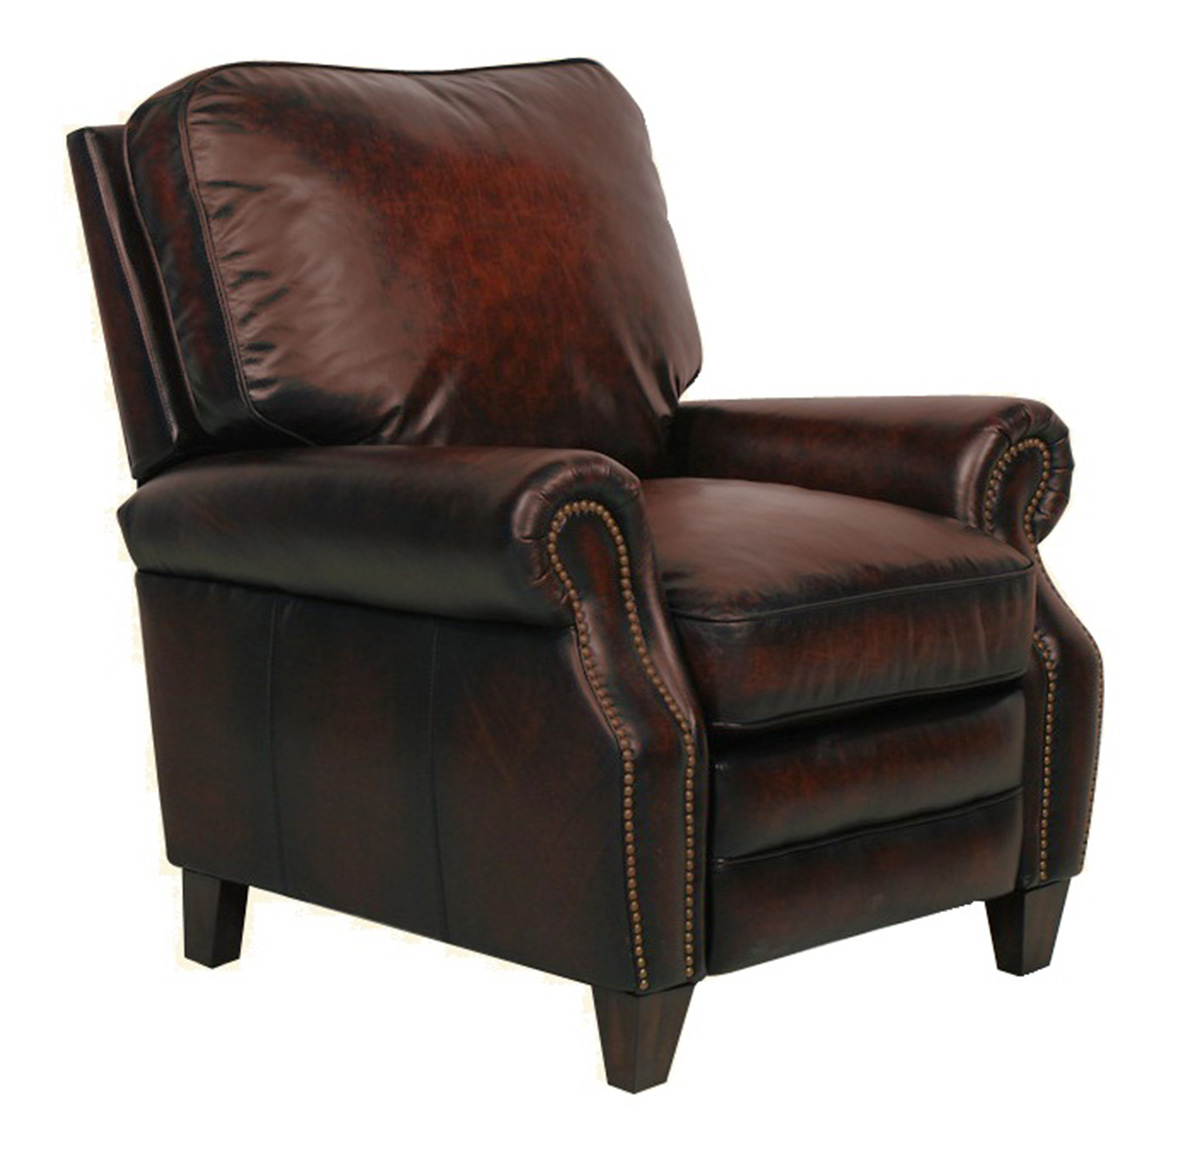 Barcalounger Briarwood Recliner Chair - Stetson Bordeaux/All Leather